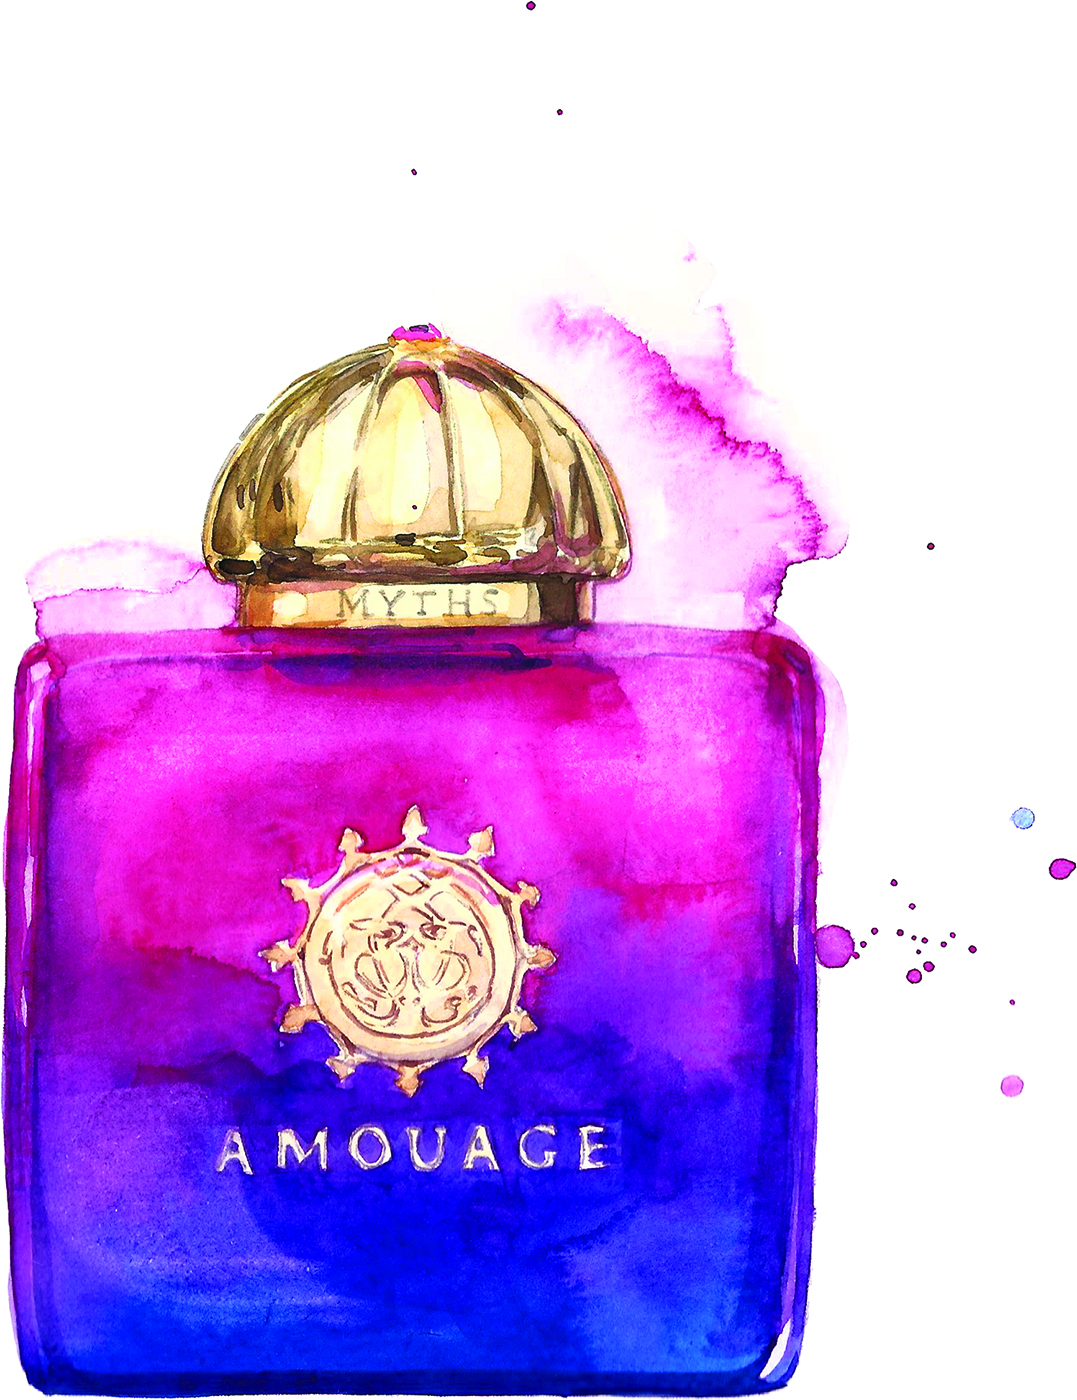 Categories: Beauty-Fragrance of the week - Amouage Myths Woman at WORLD Beauty